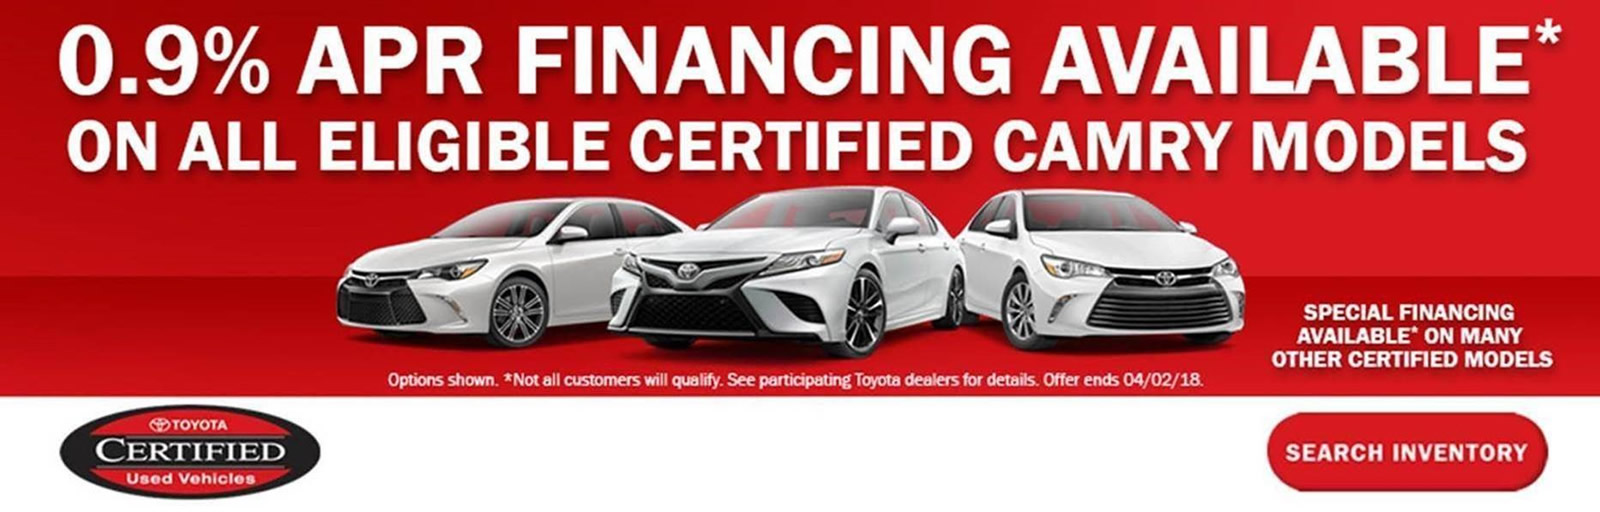 Toyota Certified Offer March 2018